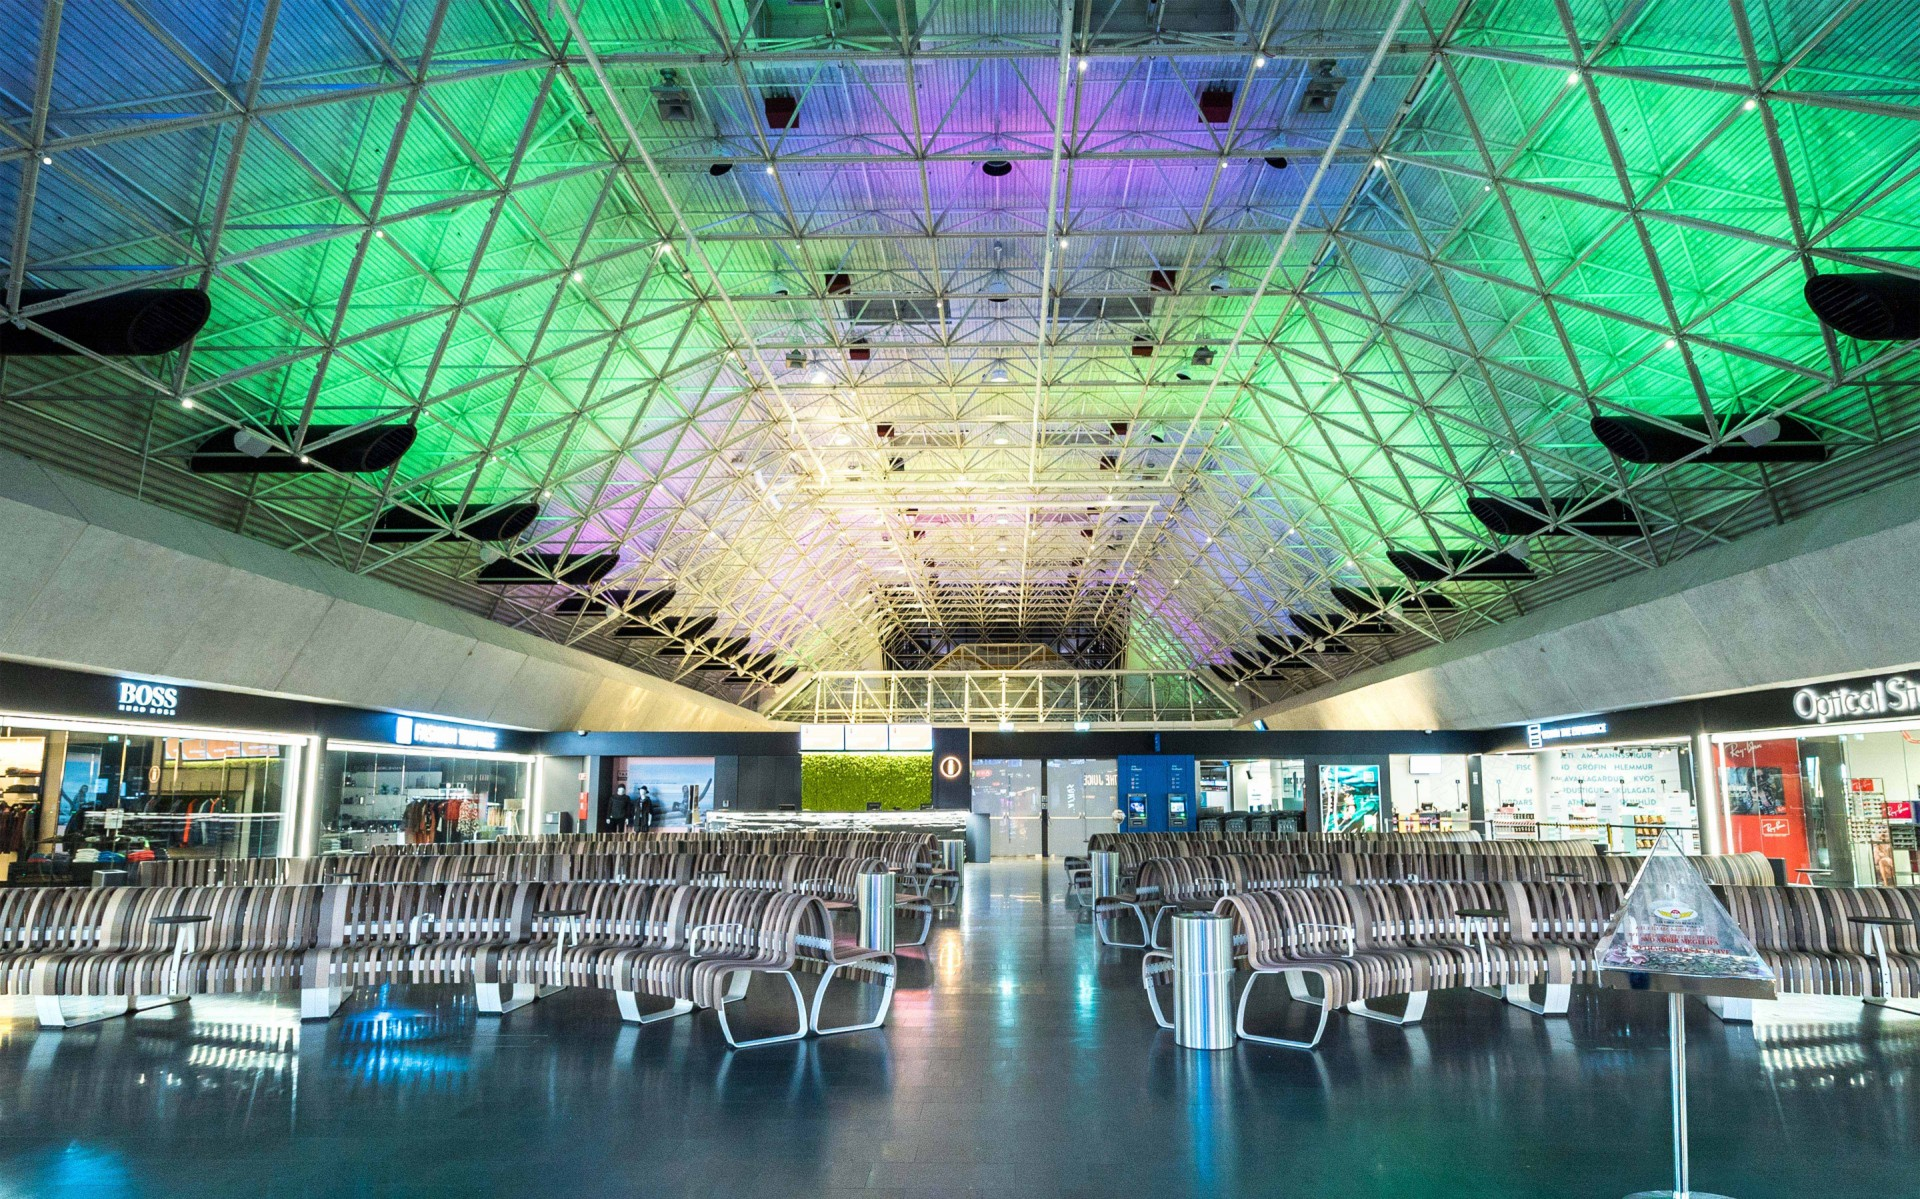 The dancing colours of the Aurora Borealis were recreated on the terminal ceiling.